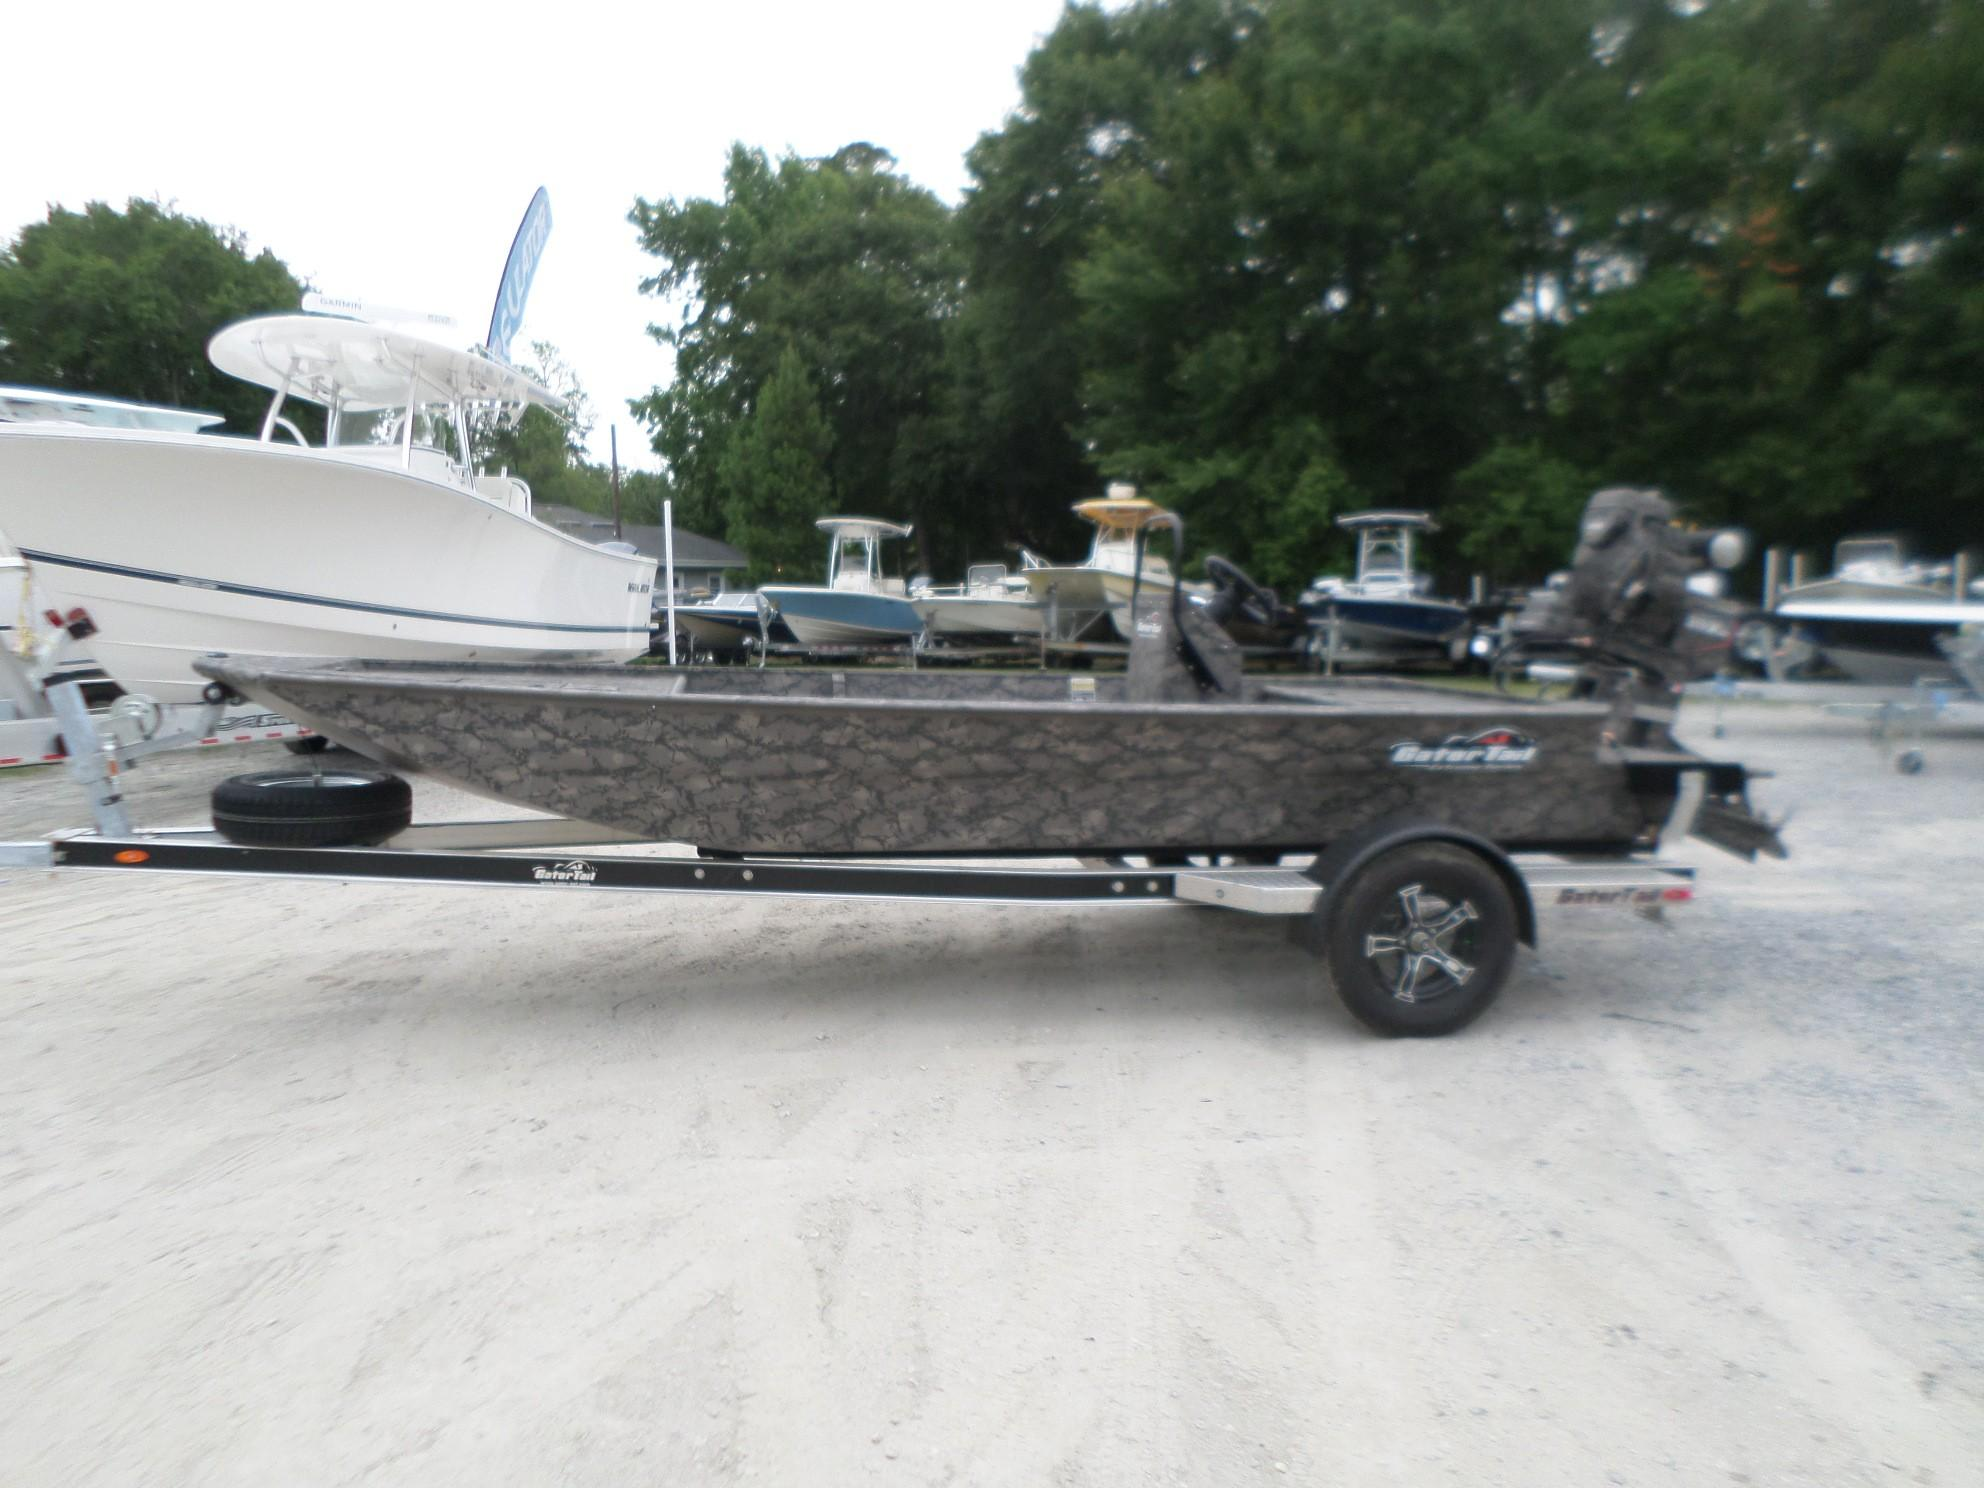 New  2018 18' Gator Tail 1854 Extreme CC Aluminum Fish Boat in Slidell, Louisiana